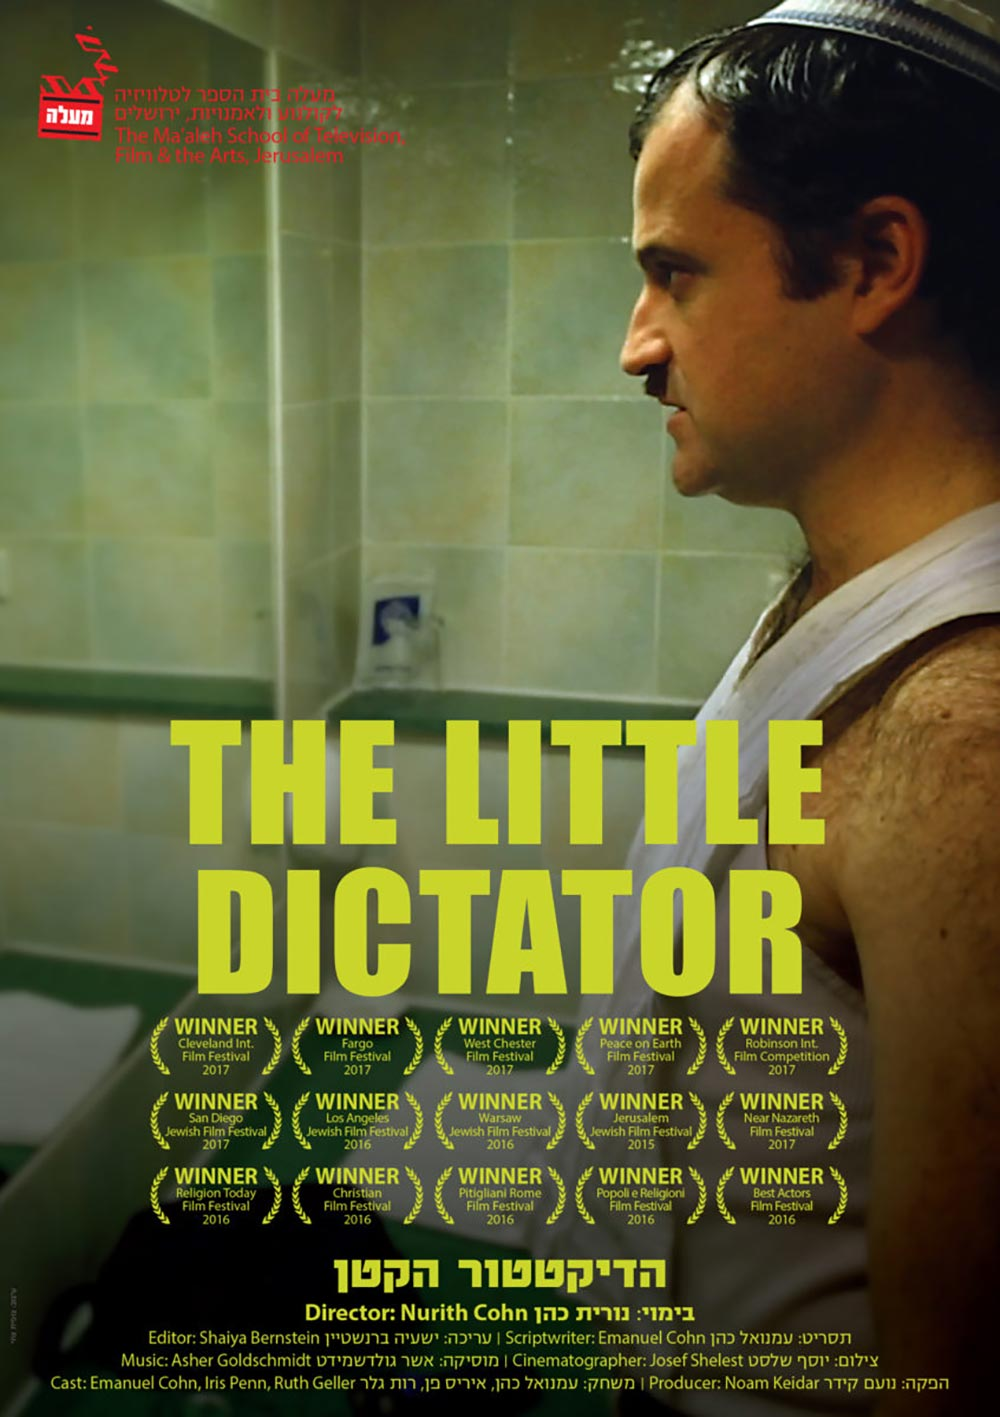 The Little Dictator